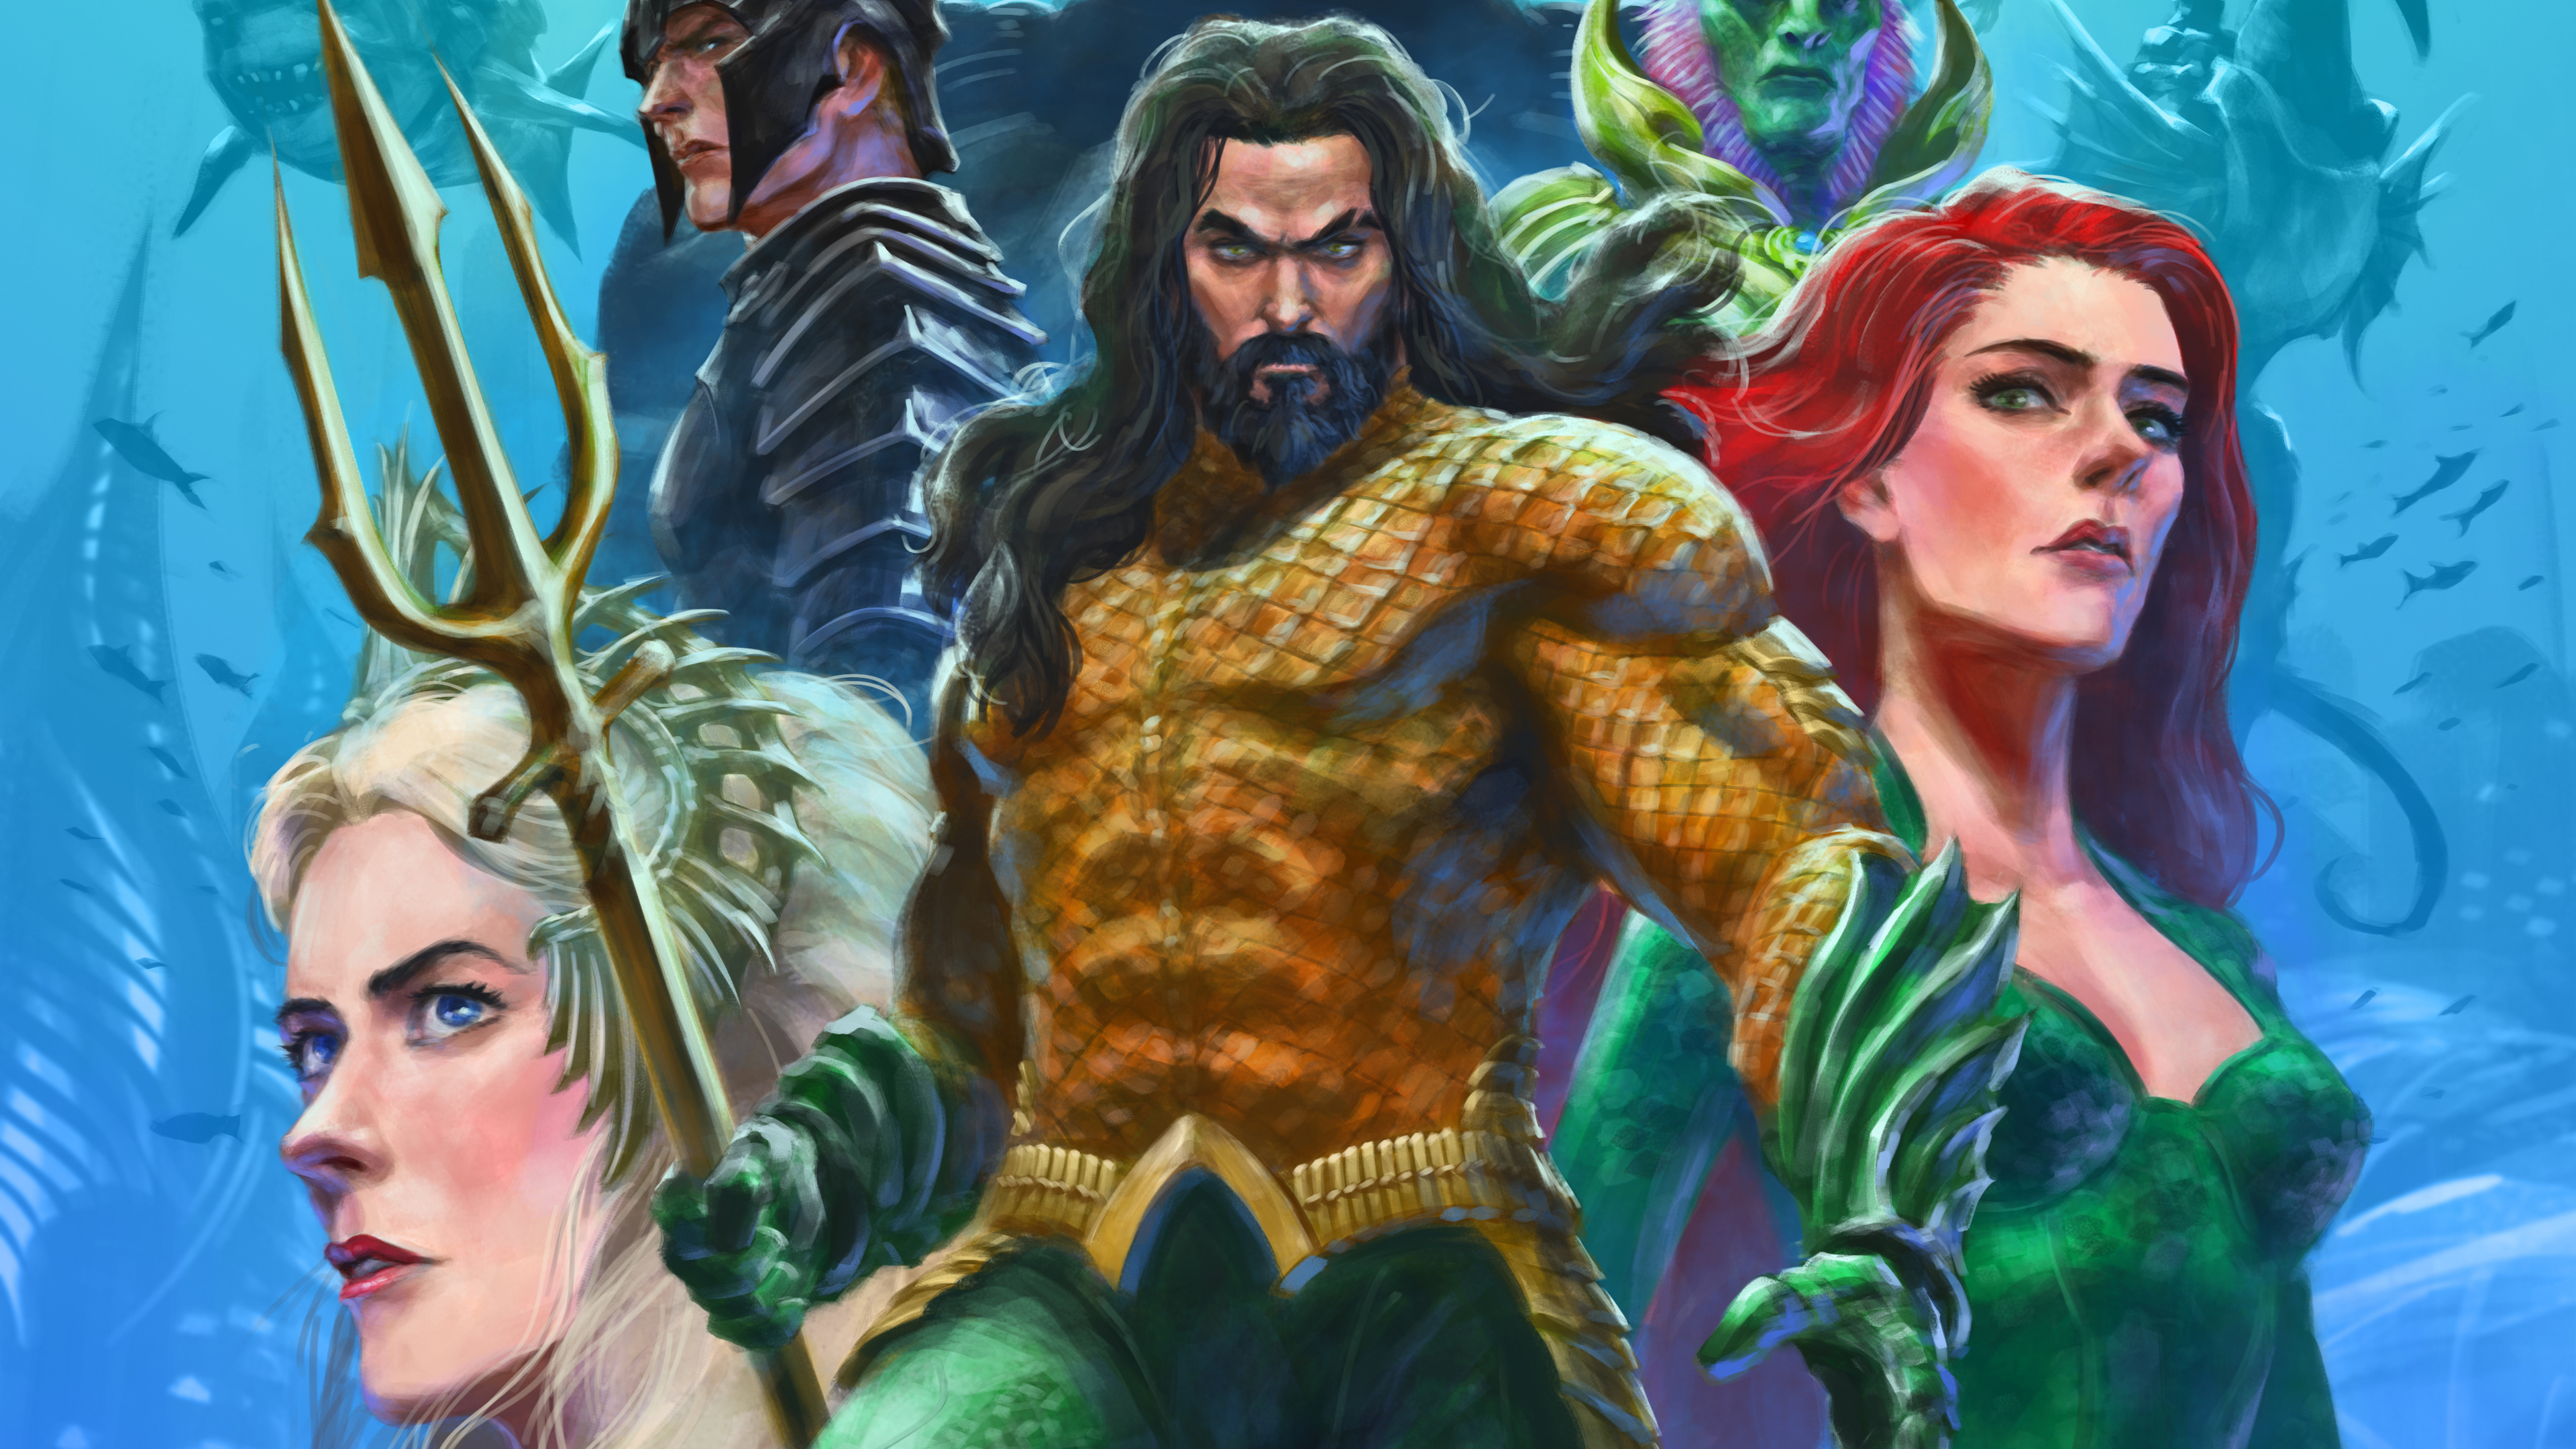 aquaman mera artwork 1570918548 - Aquaman Mera Artwork - superheroes wallpapers, mera wallpapers, hd-wallpapers, artwork wallpapers, aquaman wallpapers, 4k-wallpapers